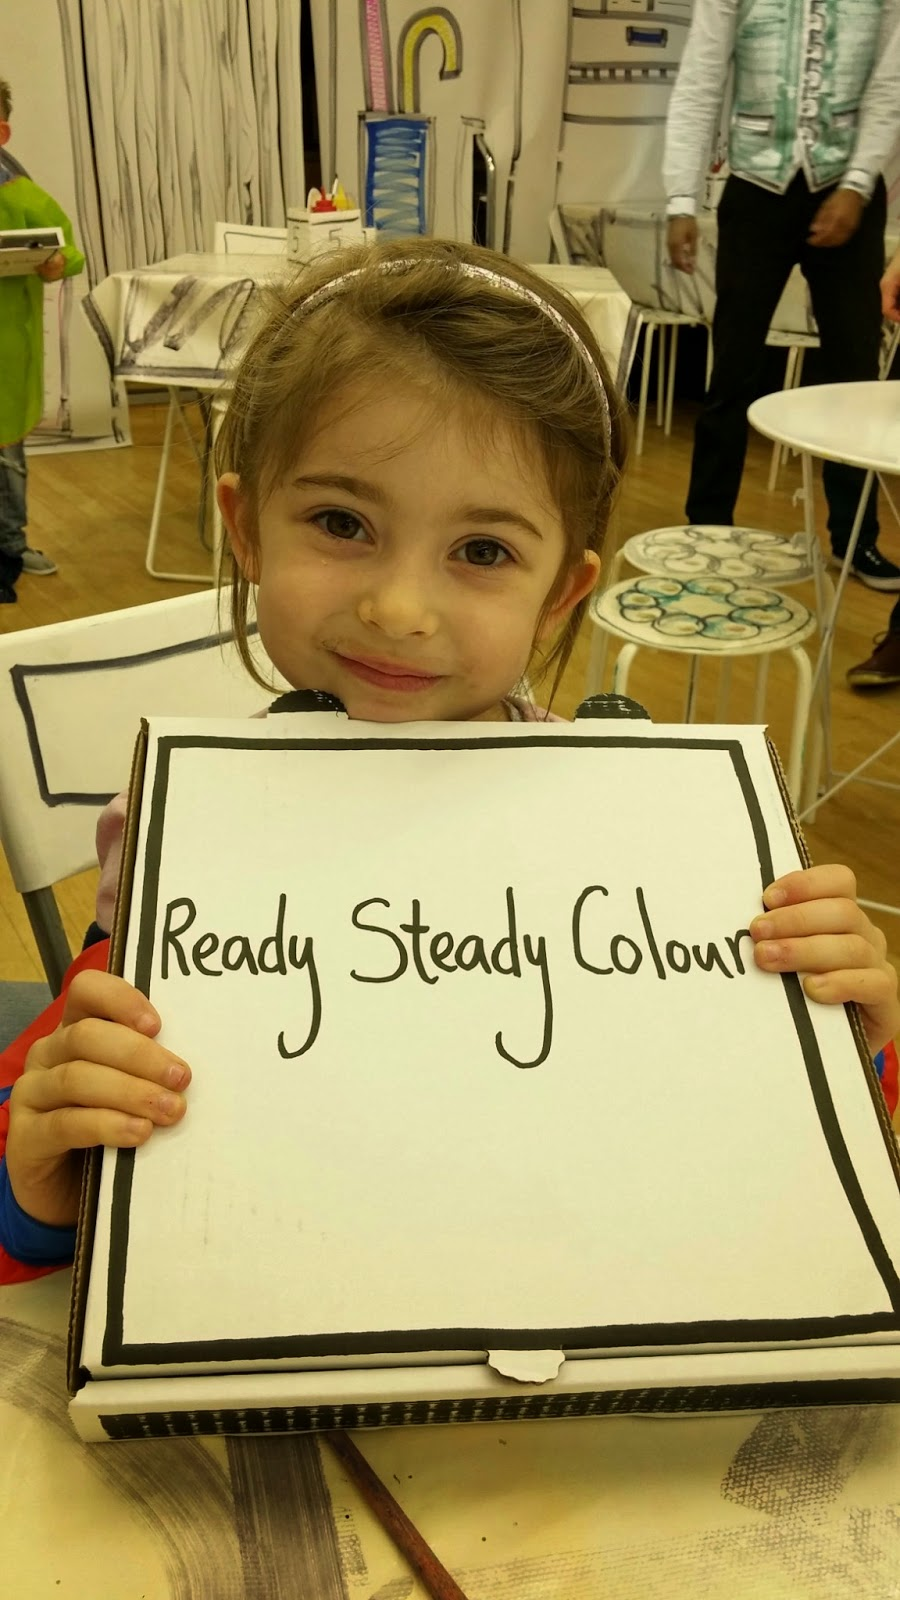 ready steady colour